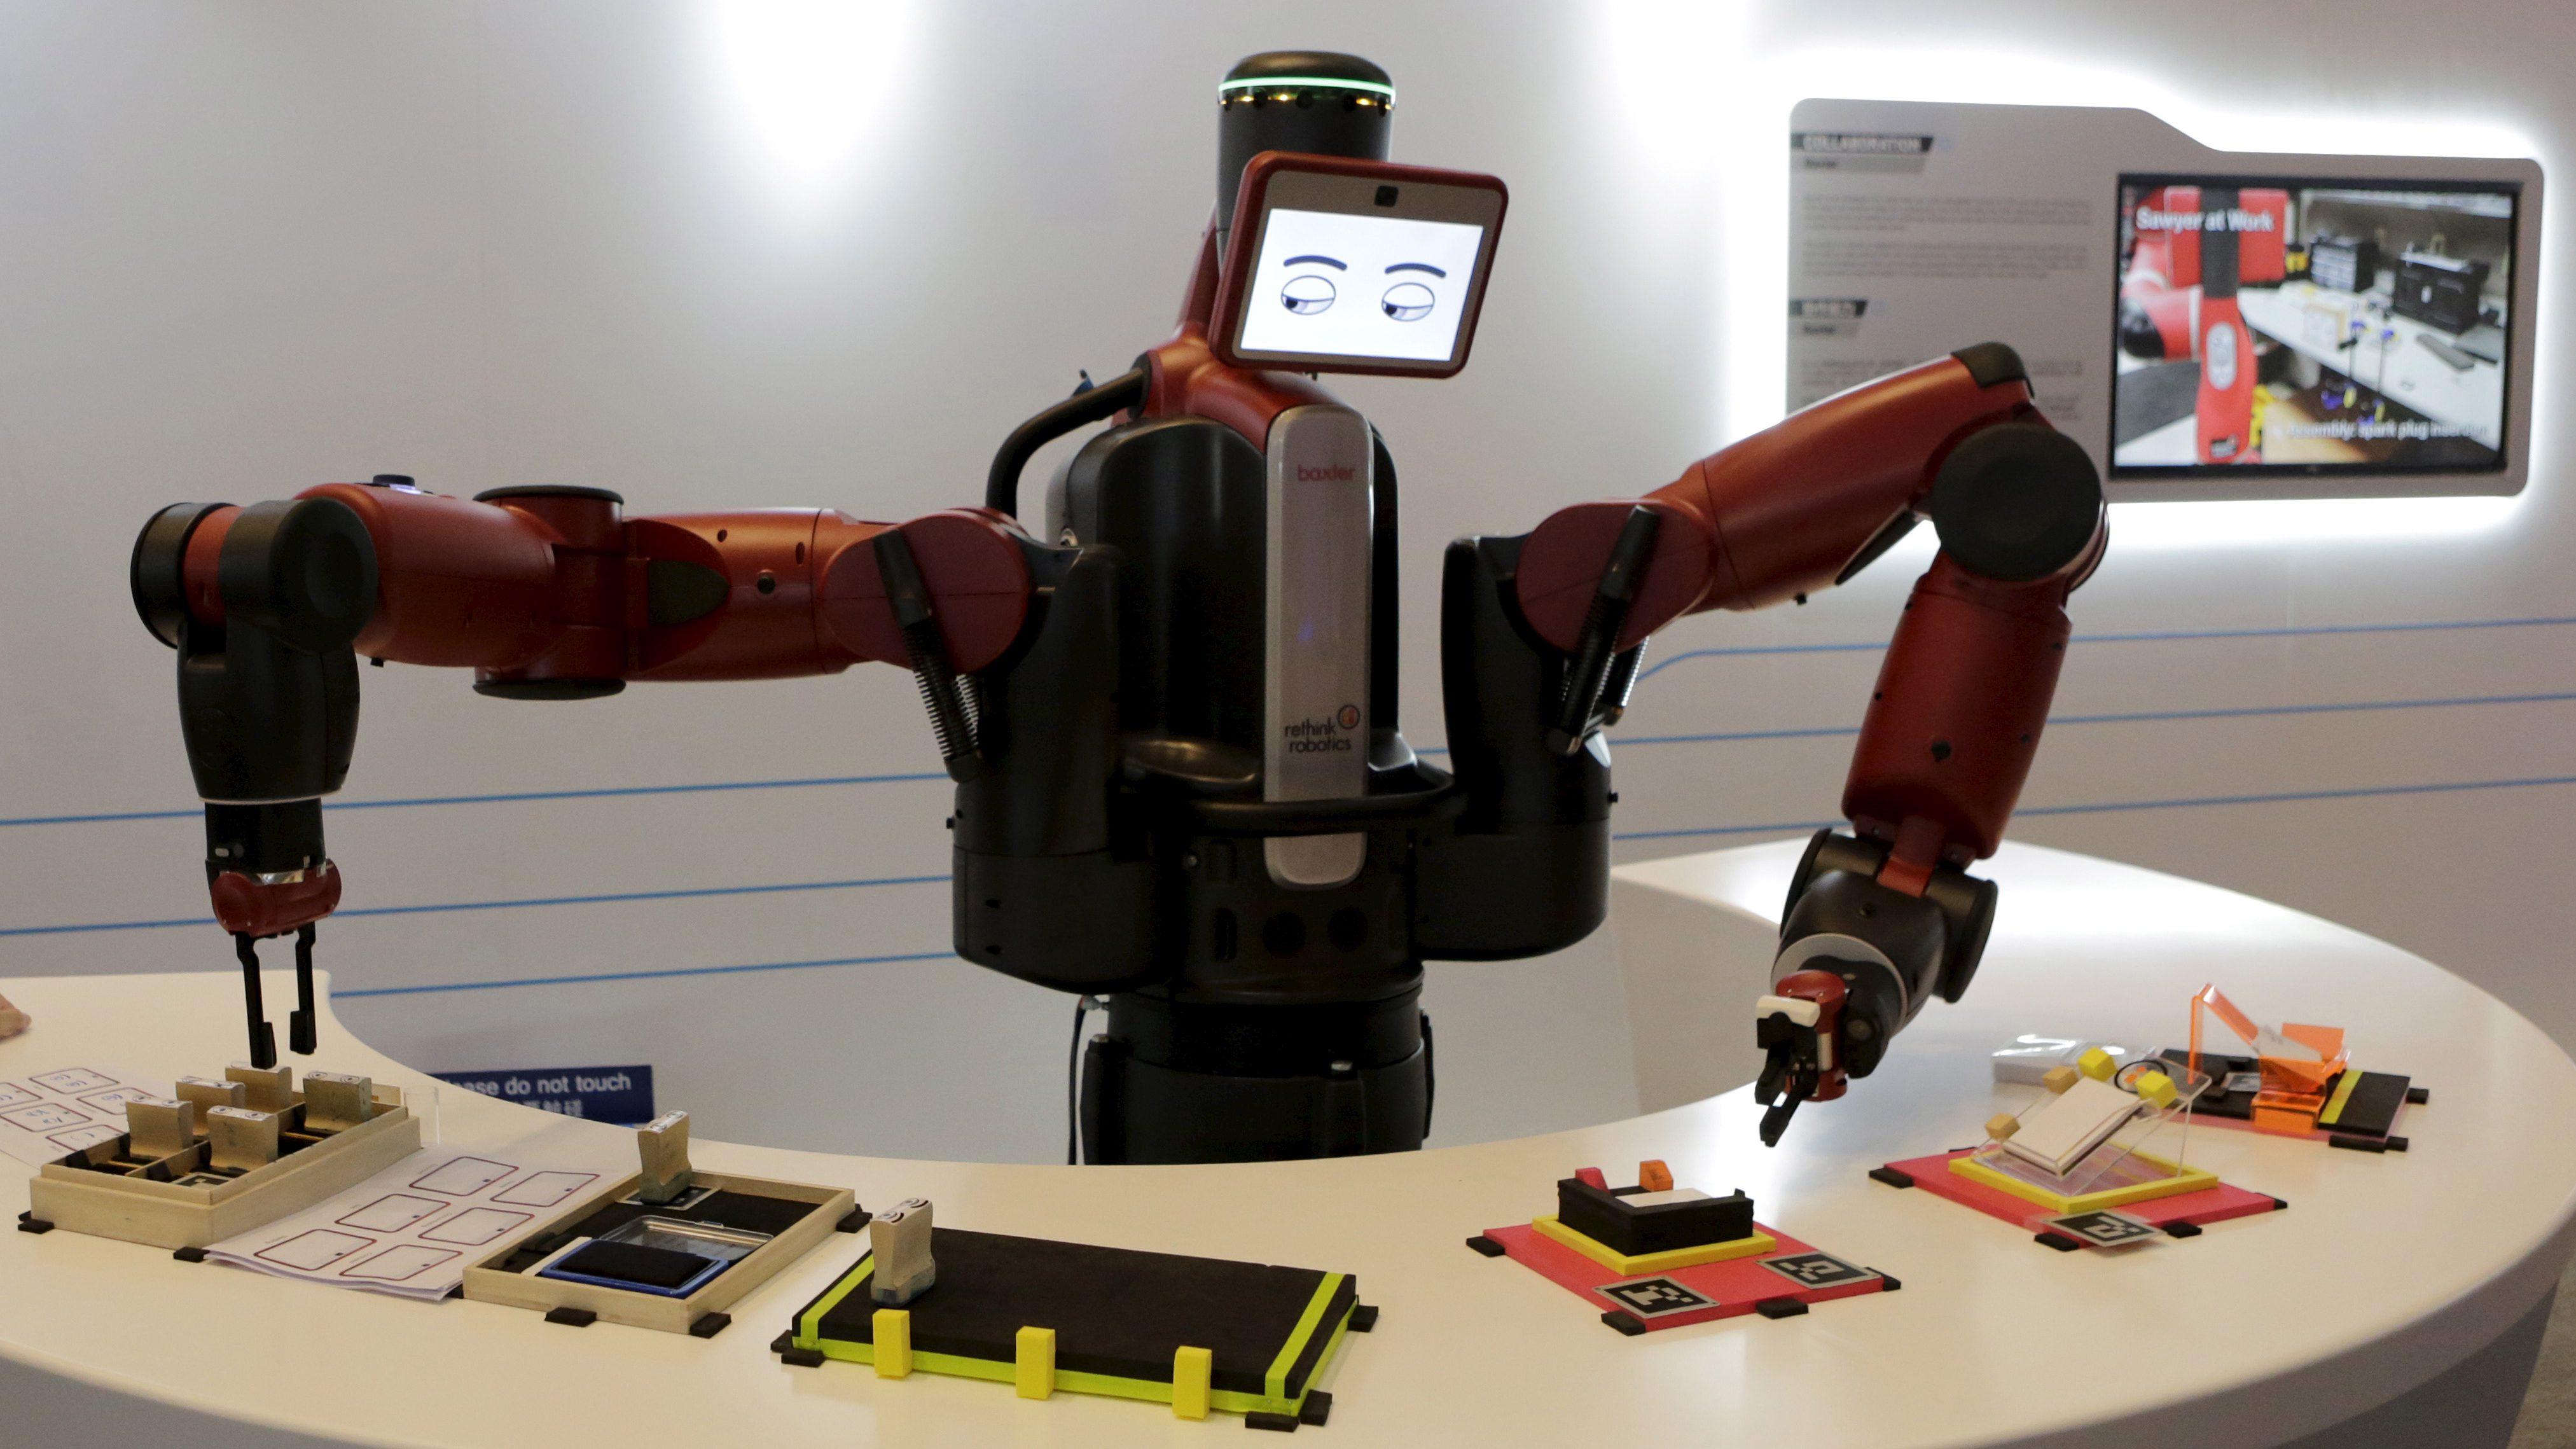 A Baxter robot of Rethink Robotics picks up a business card as it performs during a display at the World Economic Forum (WEF), in China's port city Dalian, Liaoning province, China, September 9, 2015. Chinese robotics firms are grappling with a weakening economy and slumping automotive sector, and industry insiders already predict a market bubble just three years after the central government issued policies to spur robotics development. Picture taken September 9, 2015.